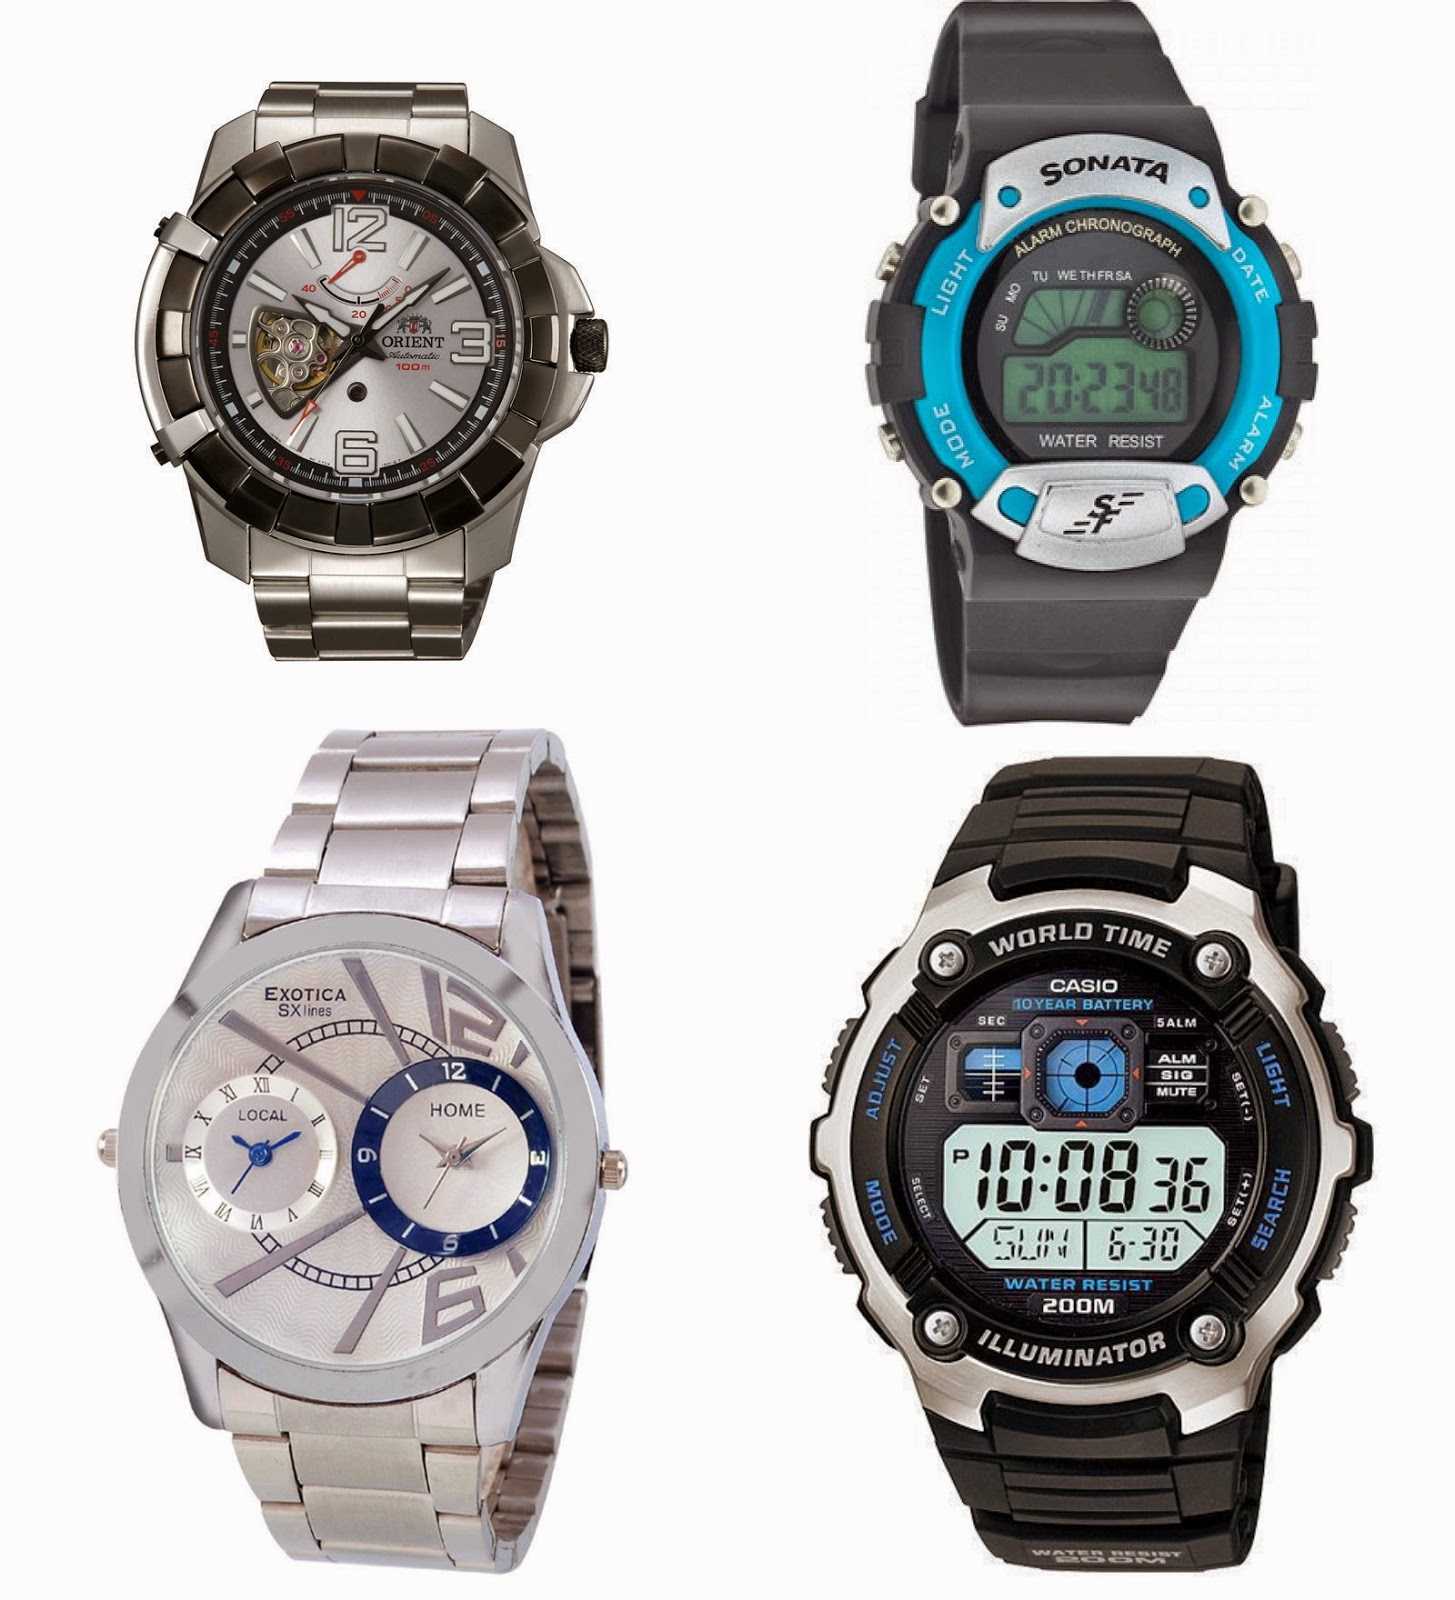 0a53a7a07f47 Mens Watches Buy Online - cheap watches mgc-gas.com